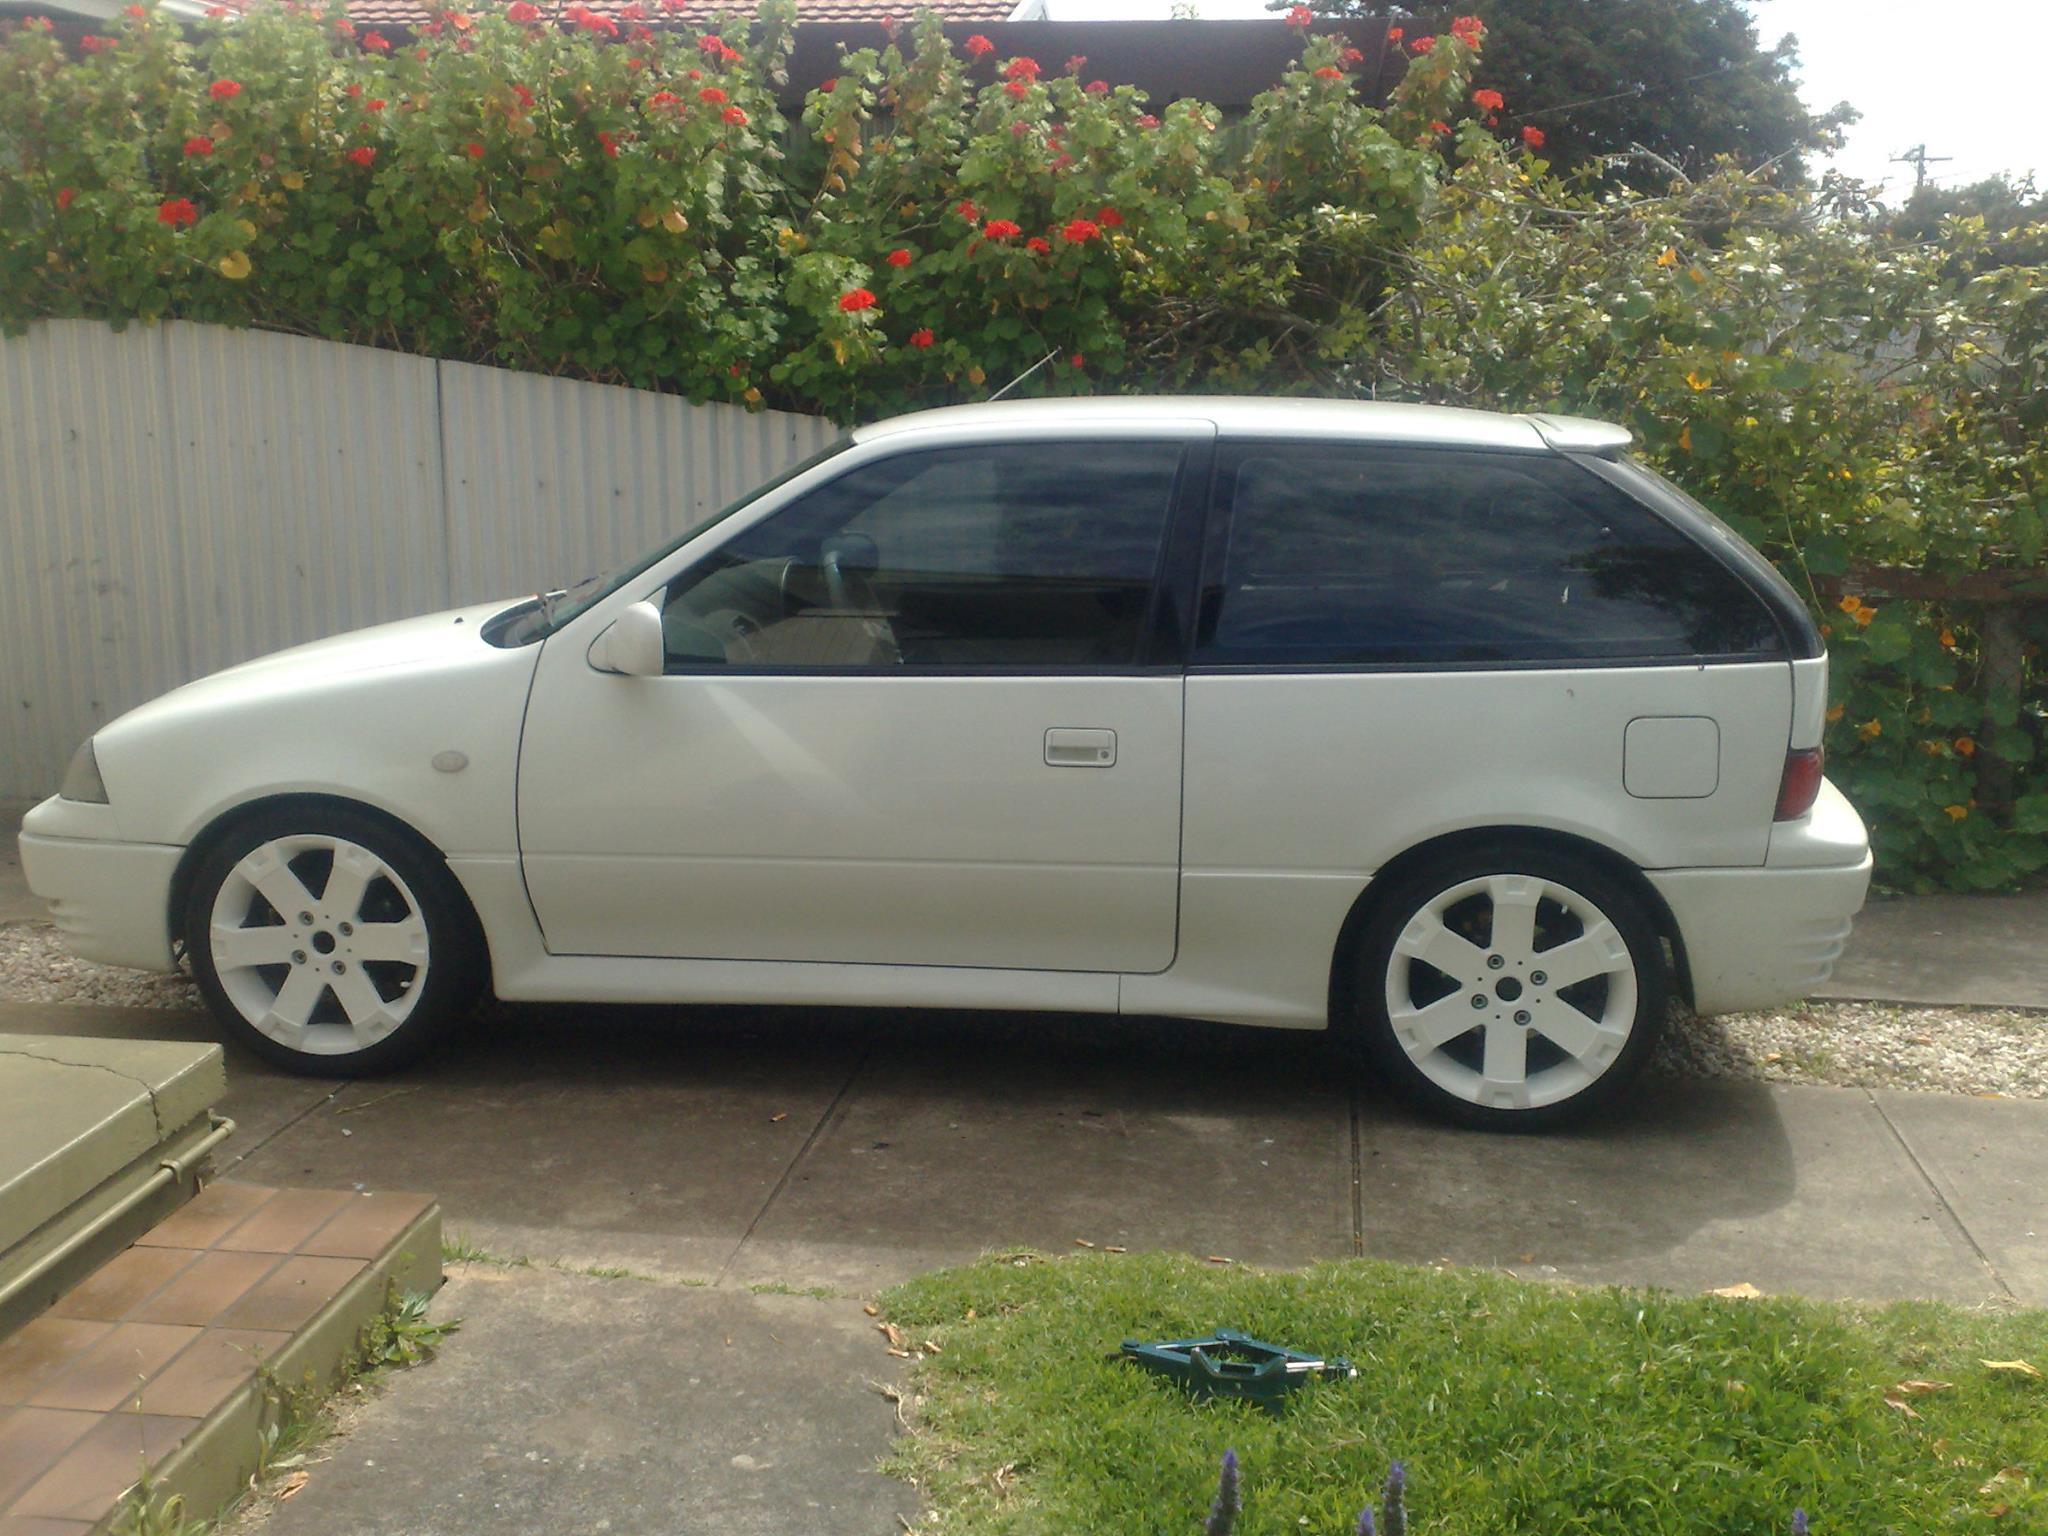 1995 Suzuki Swift Gti - For Sale - Cars